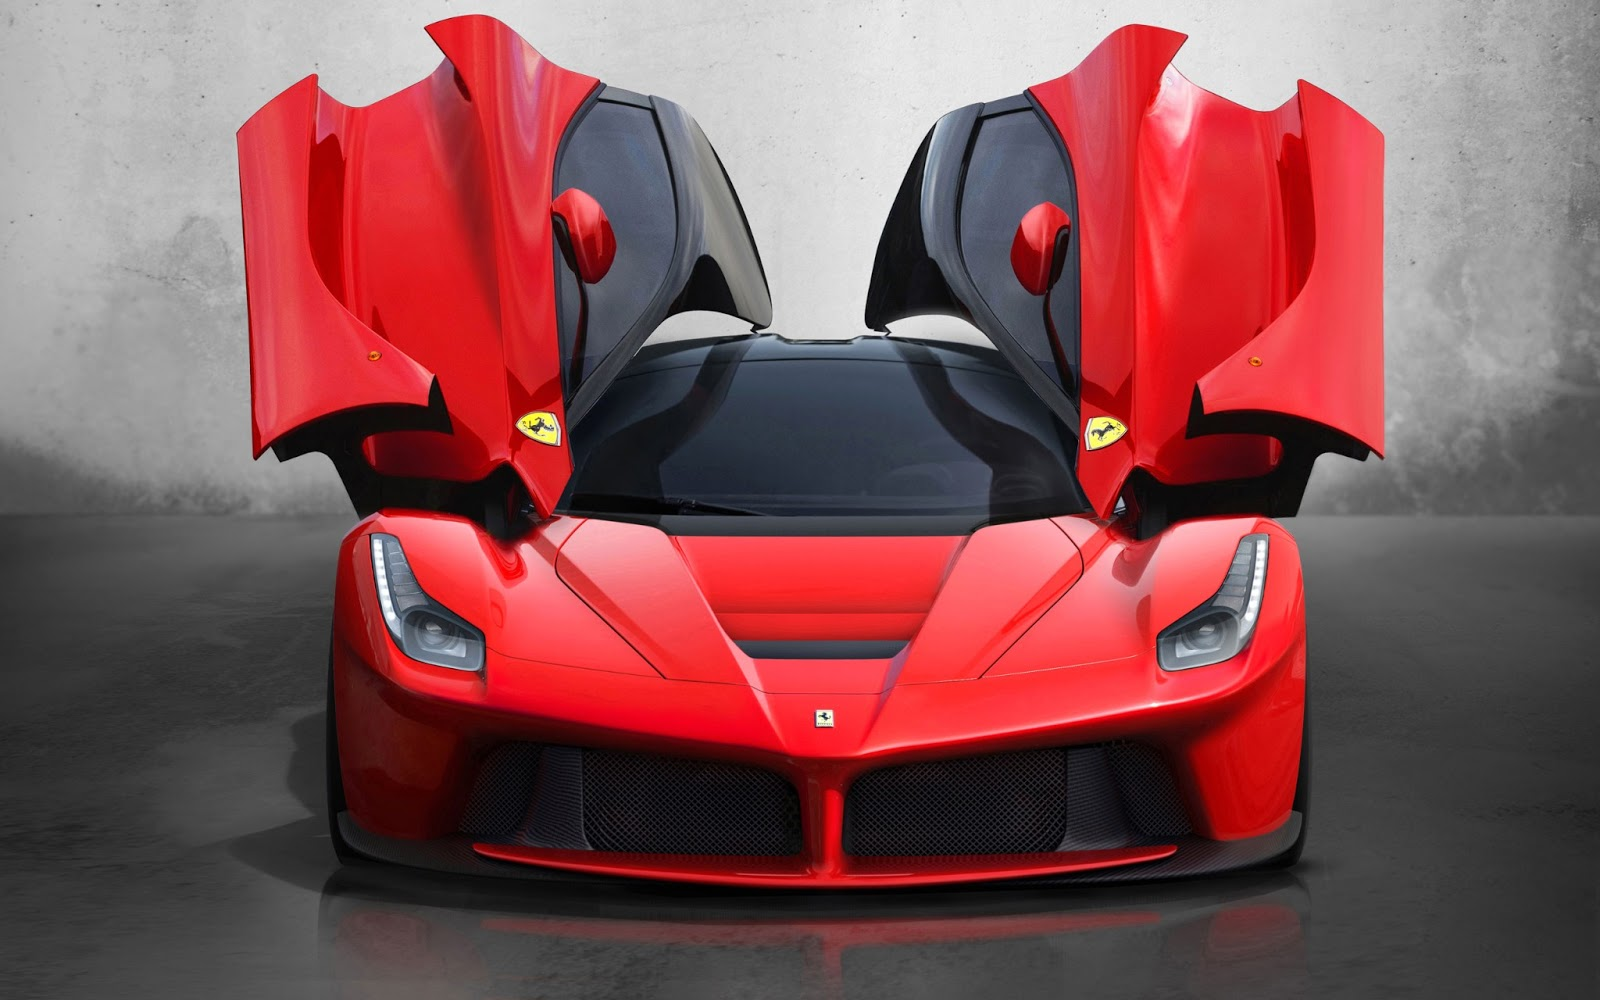 The Hybrid Car Is The First Ferrari With The Hy Kers Hybrid Technology.  Attached To A 6.2 Liter V12 Engine With 800 Hp Is An Electric Motor With  163 Hp, ...